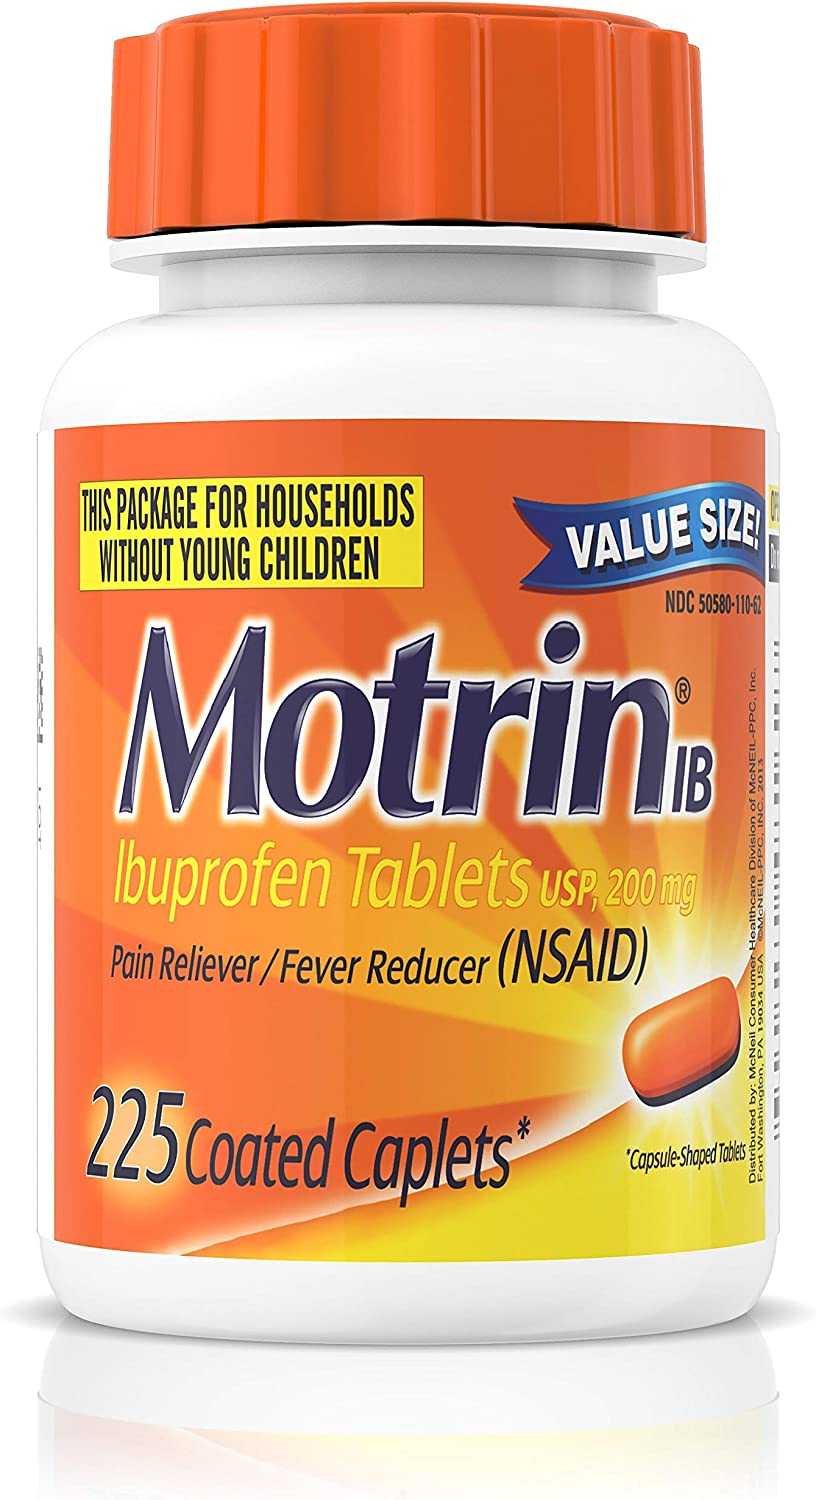 Motrin IB, Ibuprofen 200mg Tablets for Fever, Muscle Aches, Headache & Back Pain Relief, 225 ct.: Health & Personal Care